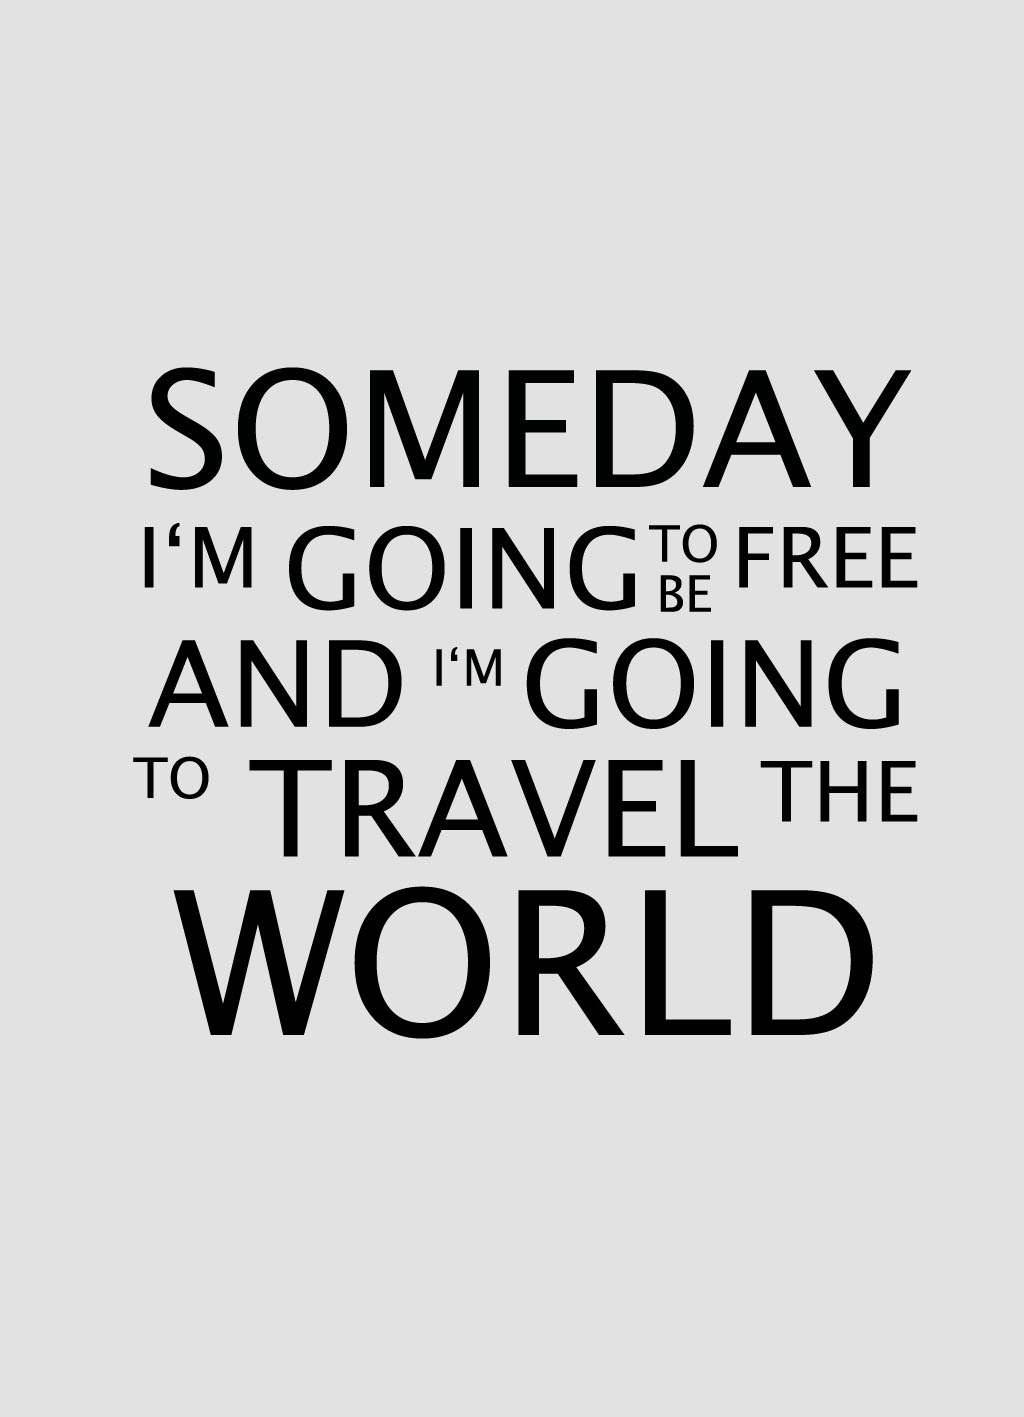 Quote of the Day :: Someday I'm going to be free and 'im going to travel the world